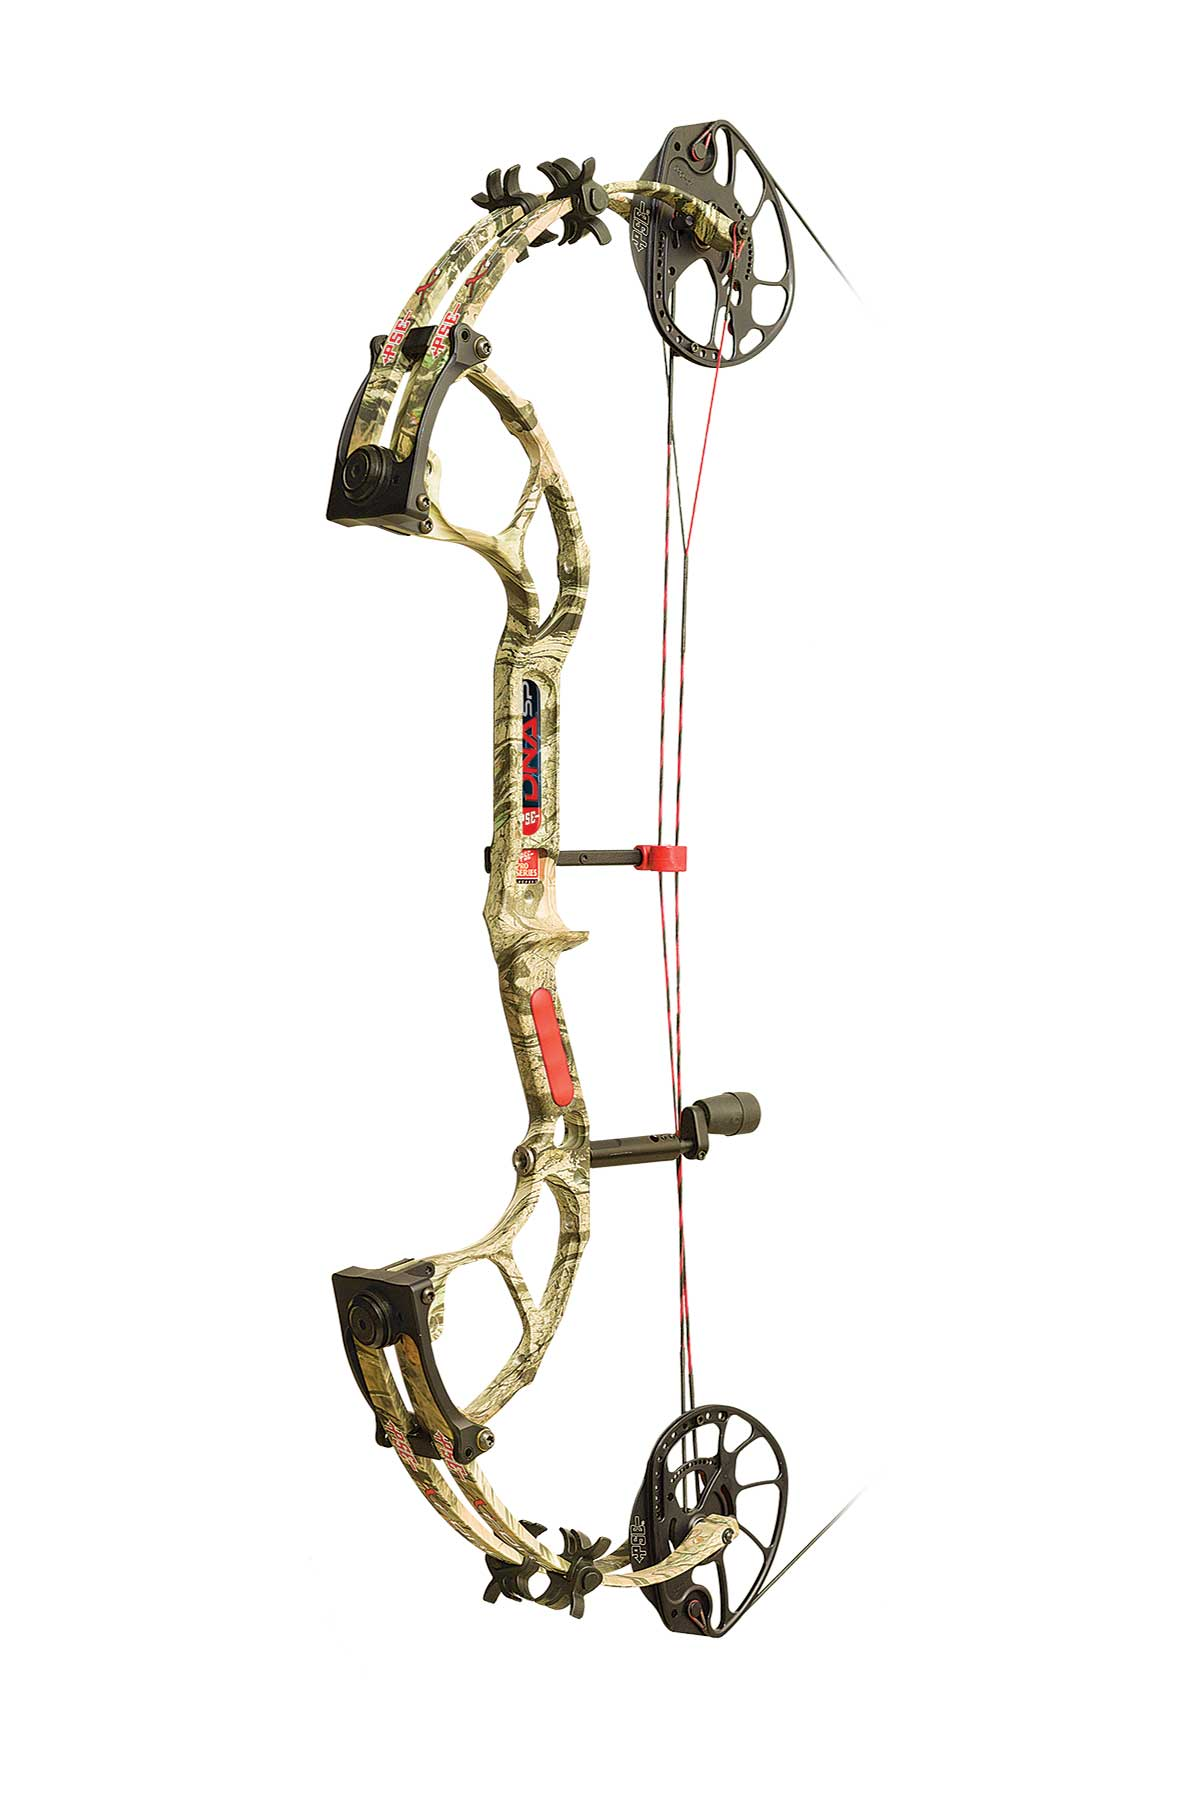 //www.gameandfishmag.com/files/30-compound-bows-for-2014-the-beauties-and-the-bargains/pse-archery-x-force-dream-season-dna-sp.jpg